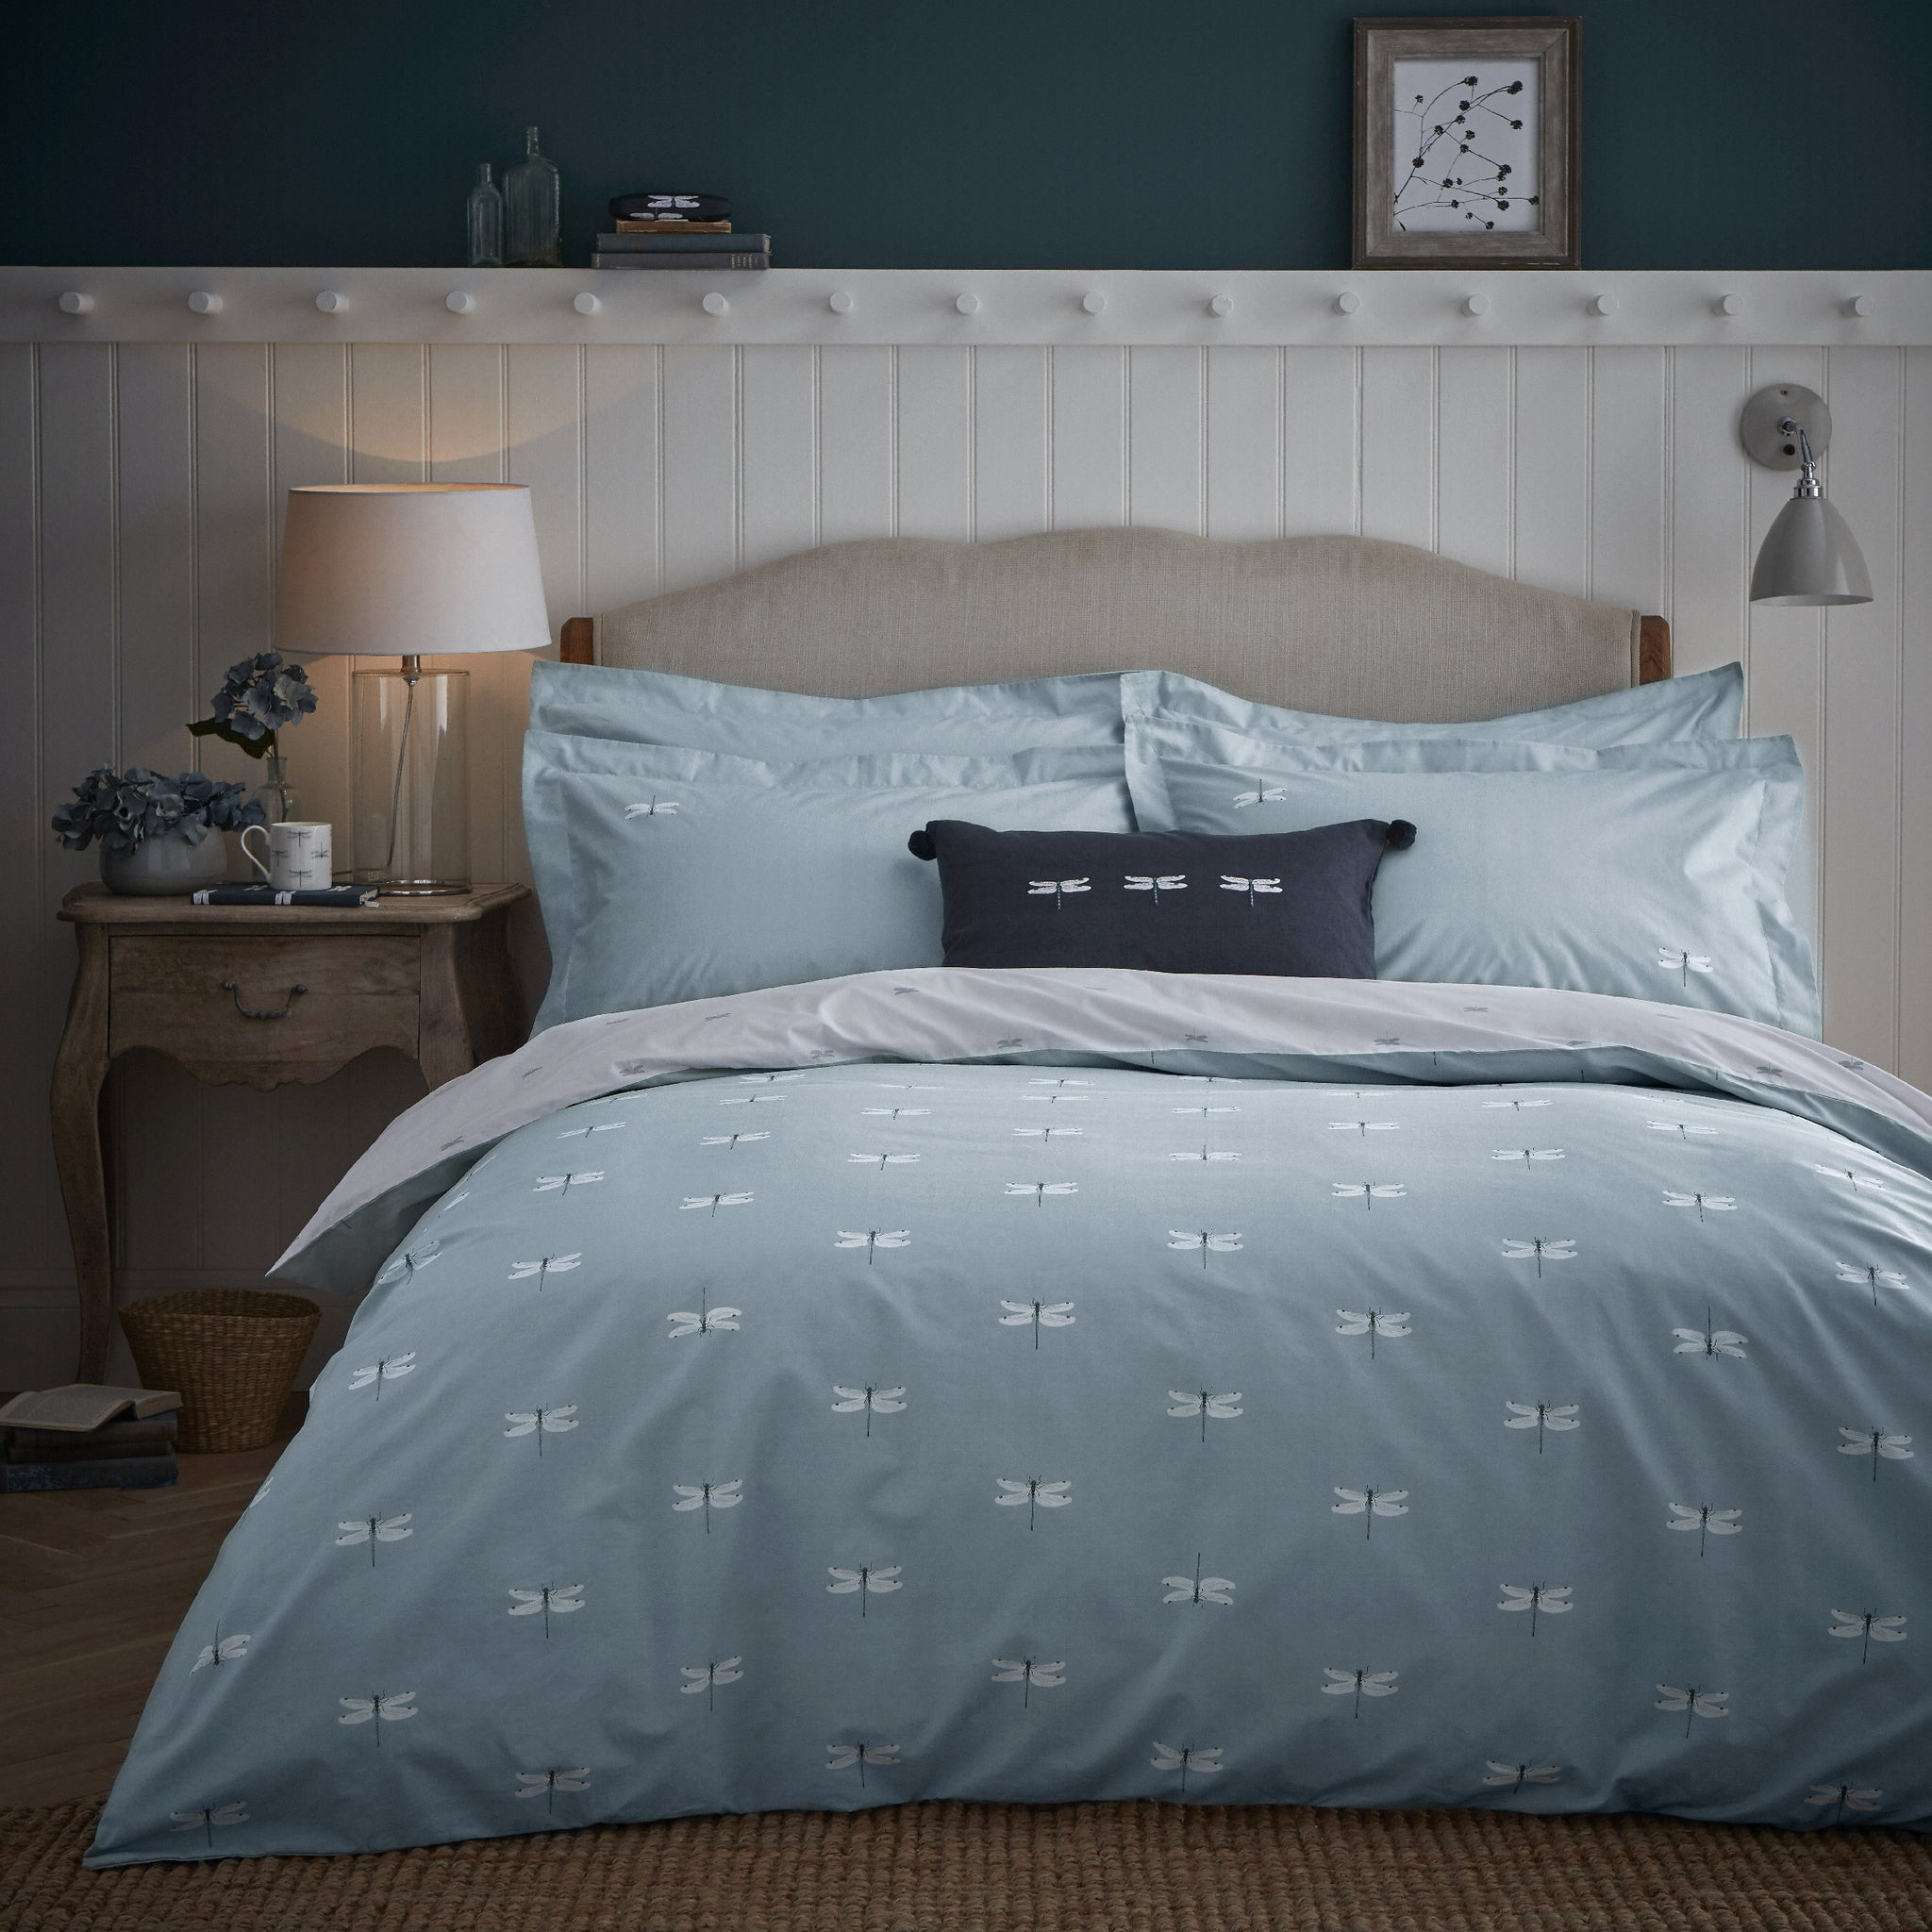 Dragonfly Pair of Oxford Pillowcases by Sophie Allport